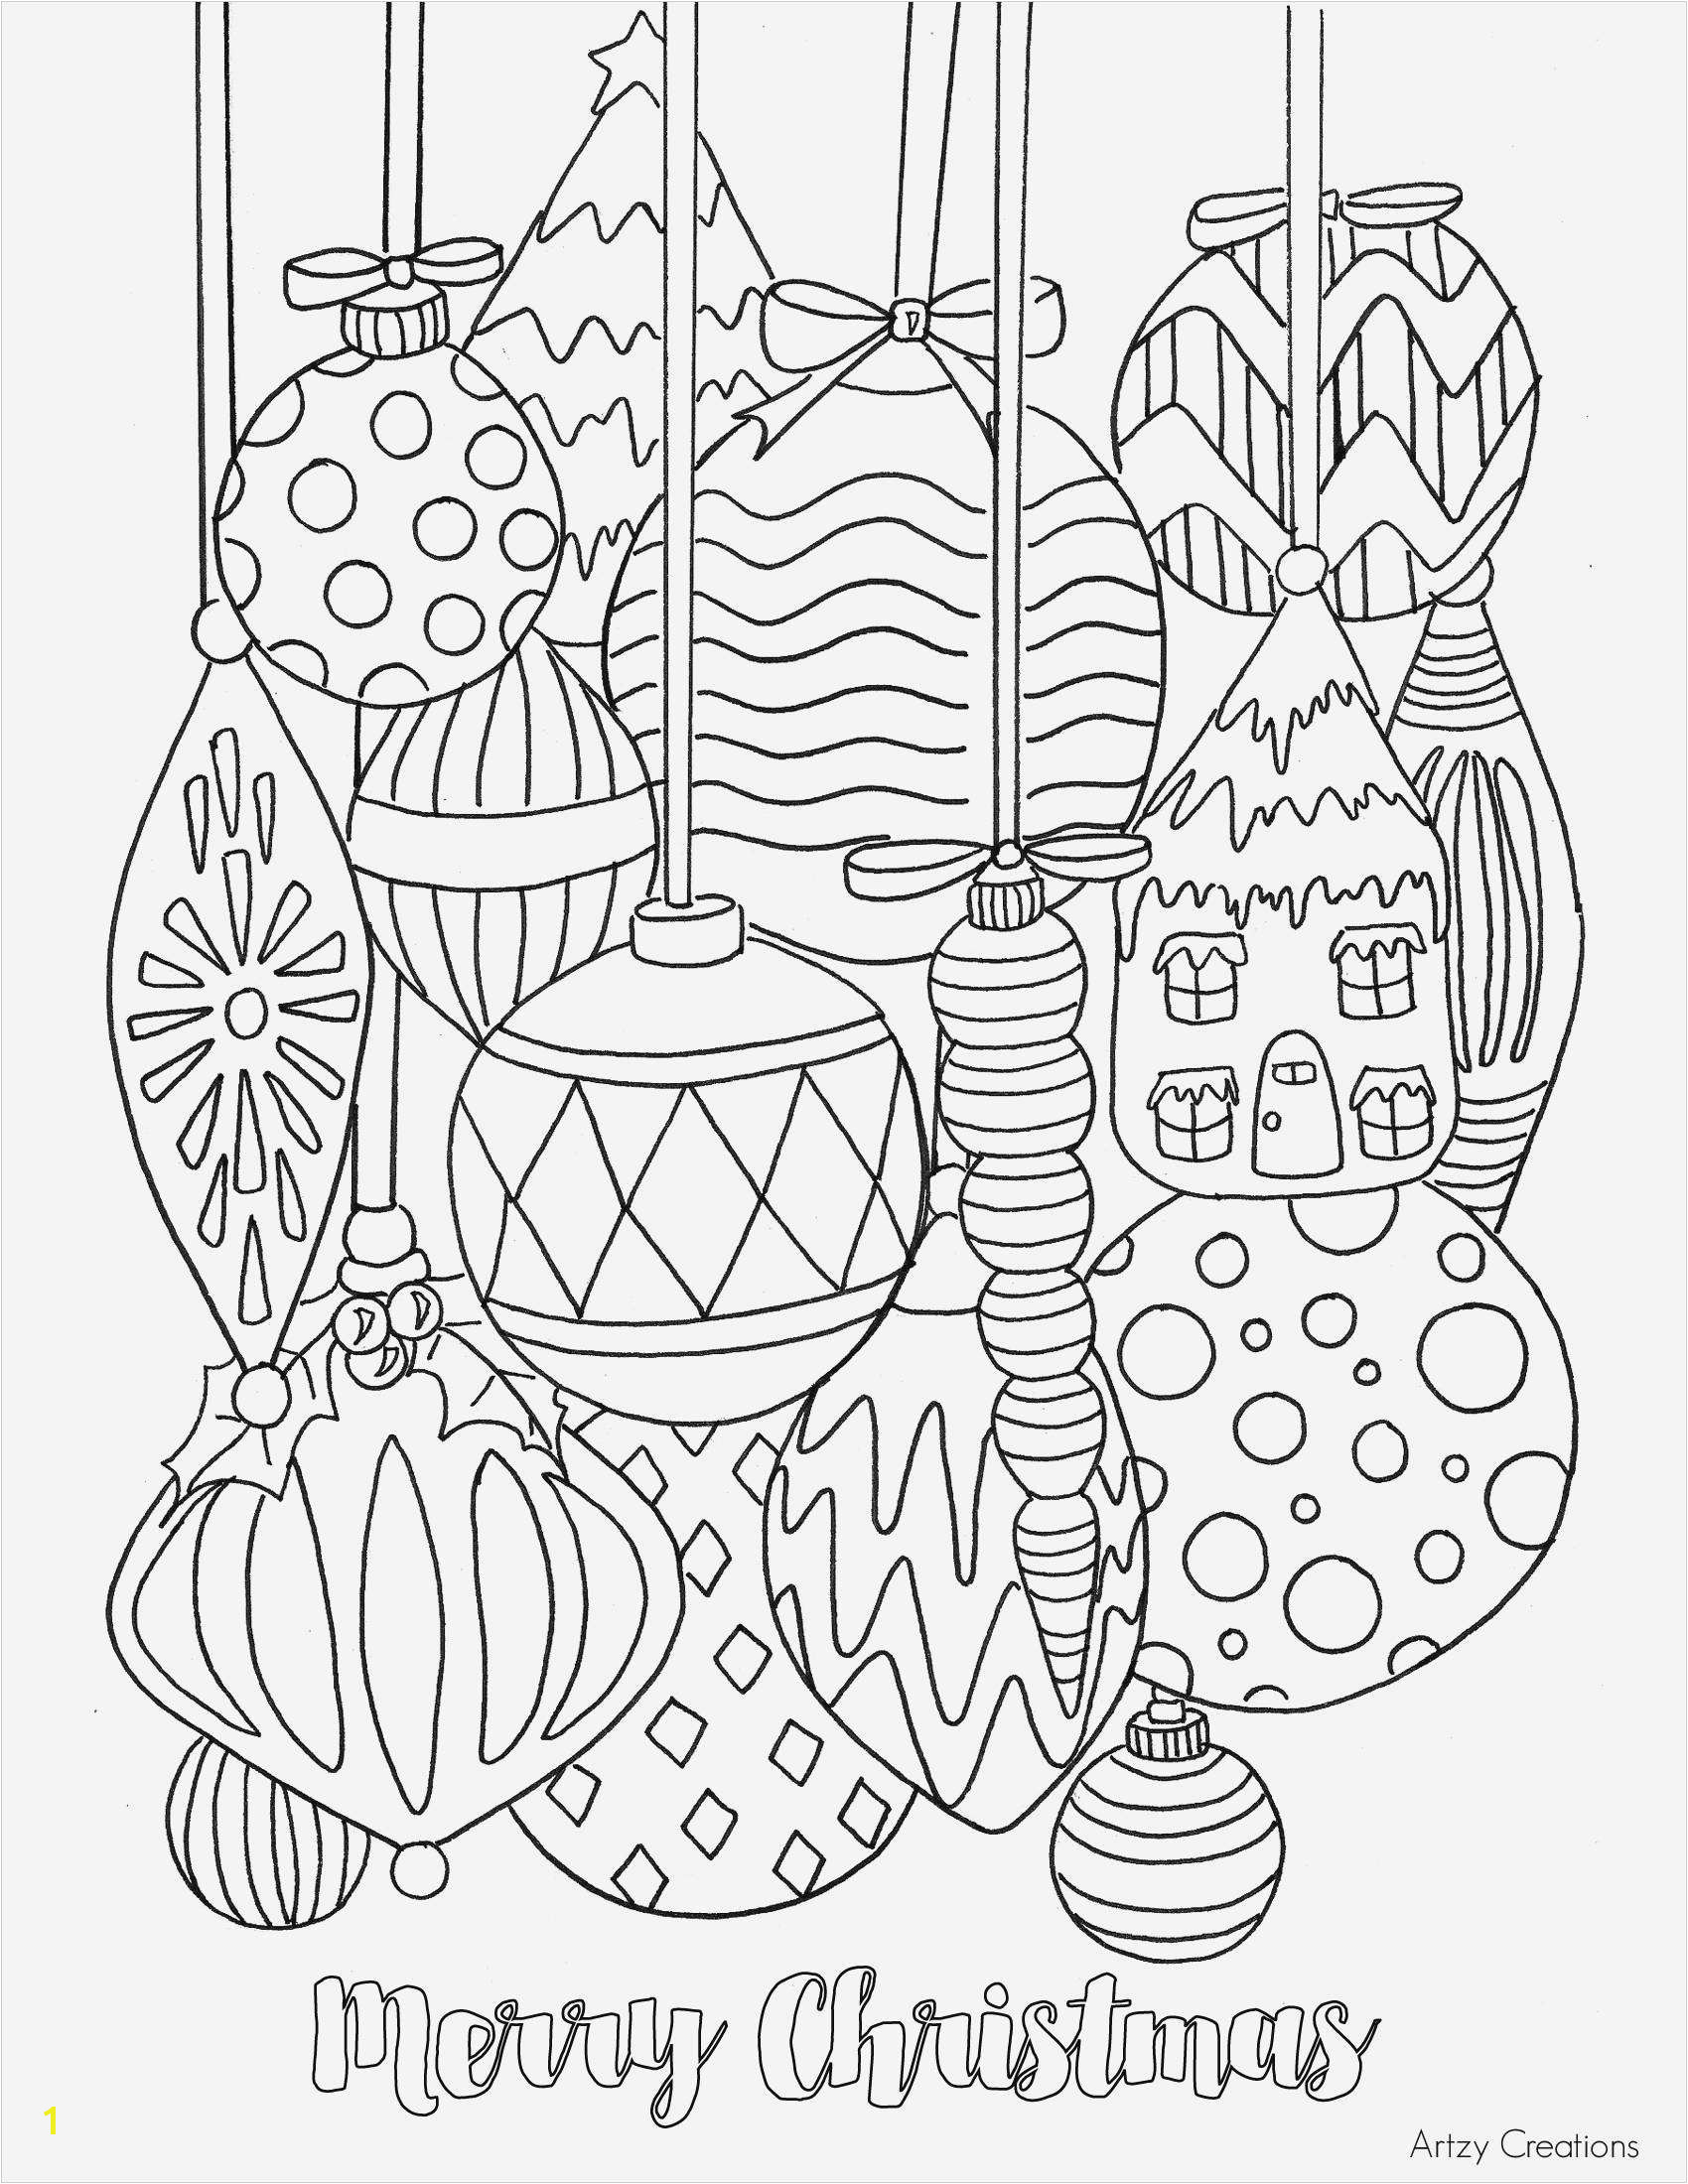 Adult Coloring Pages Patterns Enchanting Adult Coloring Pages Patterns As Though Cool Coloring Page For